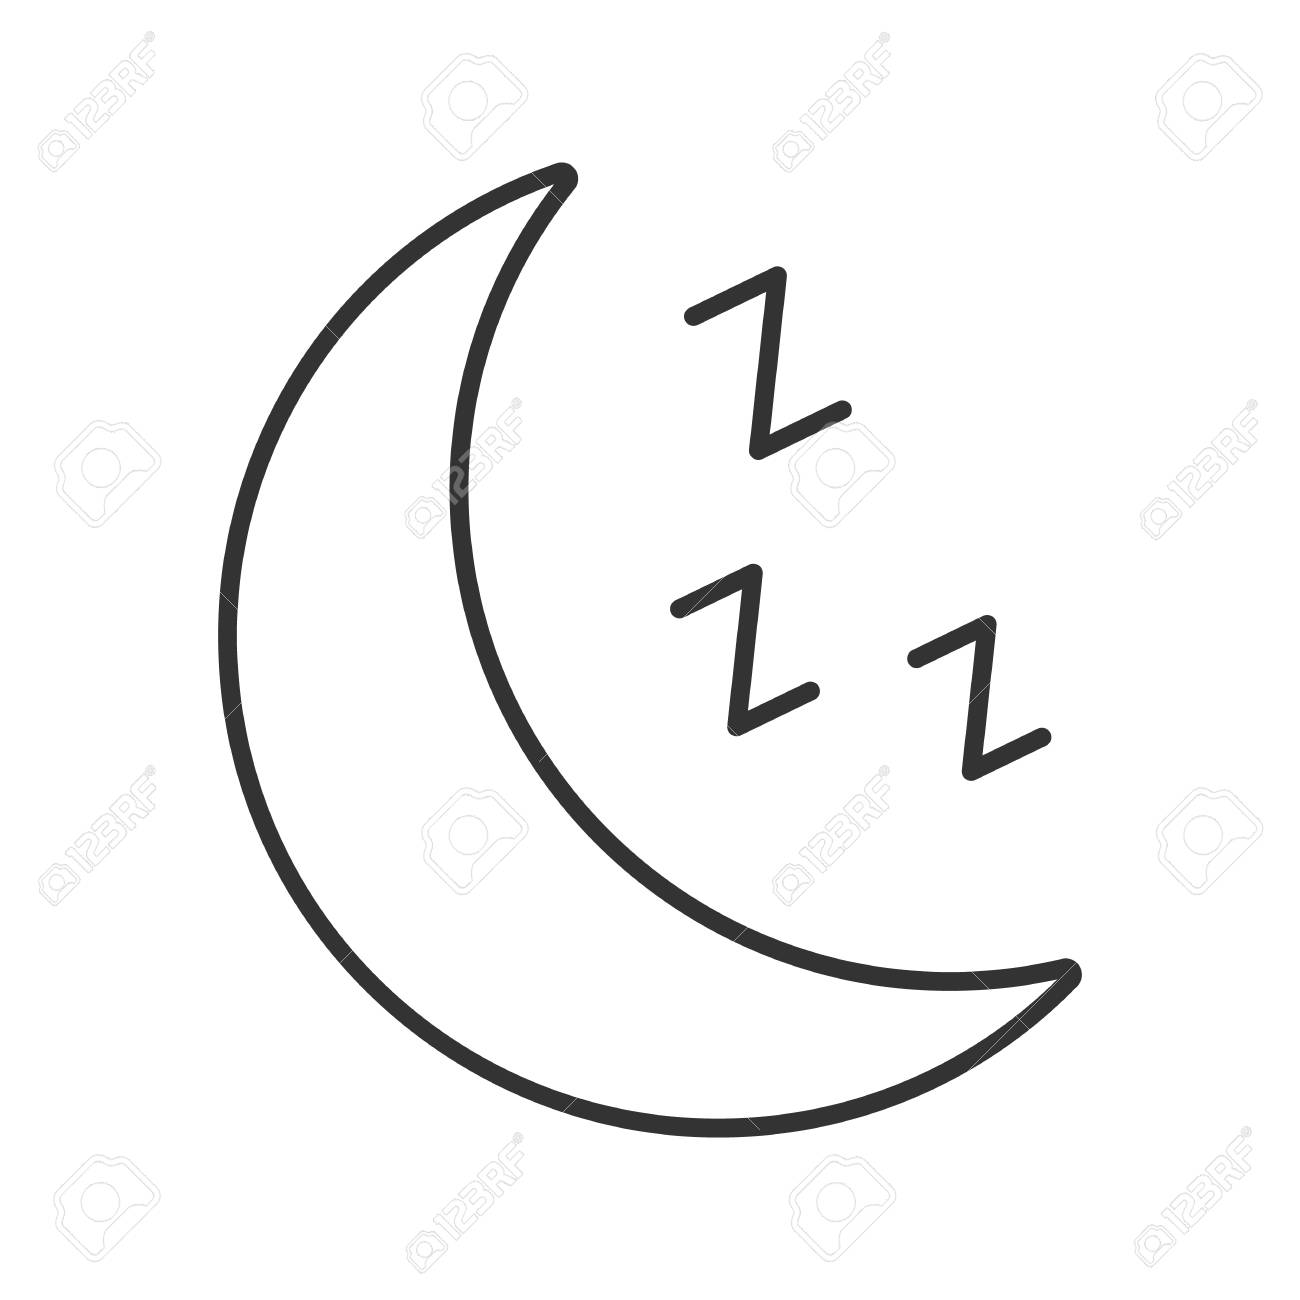 Zzz text symbol choice image symbol and sign ideas moon with zzz symbol linear icon bedtime thin line illustration moon with zzz symbol linear icon buycottarizona Choice Image